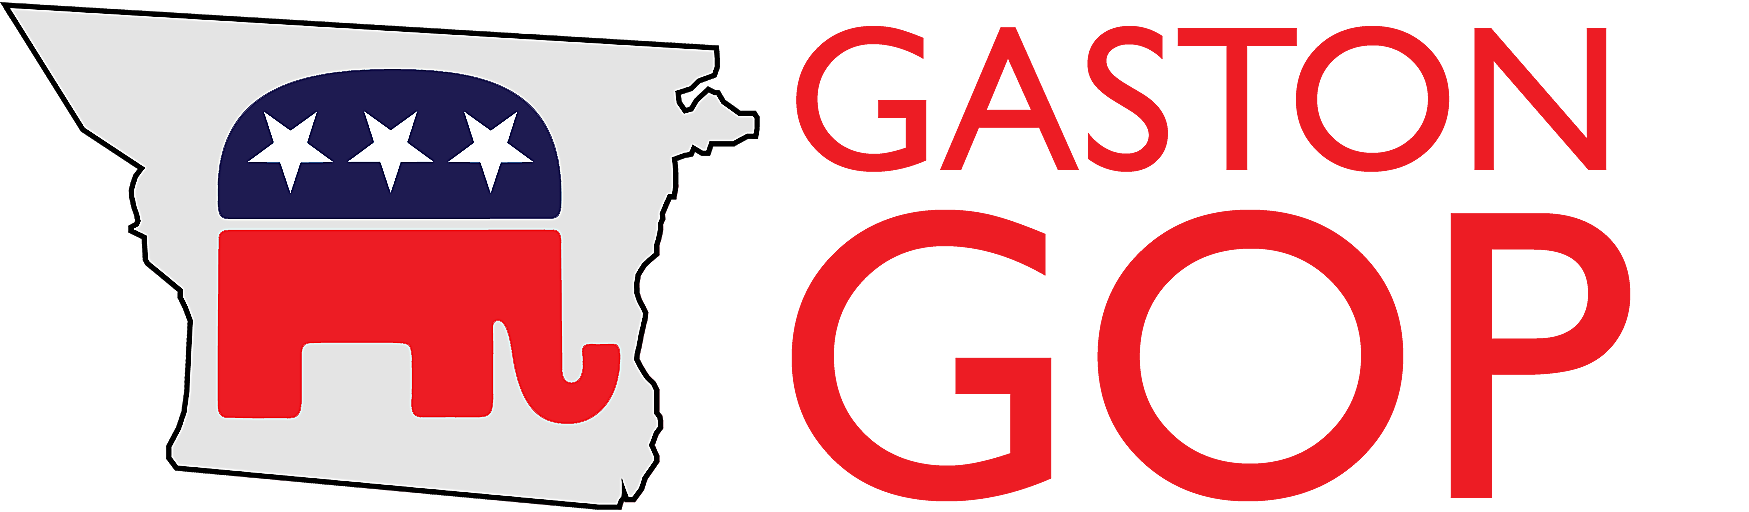 Gaston County Republican Party: 2020 Elections